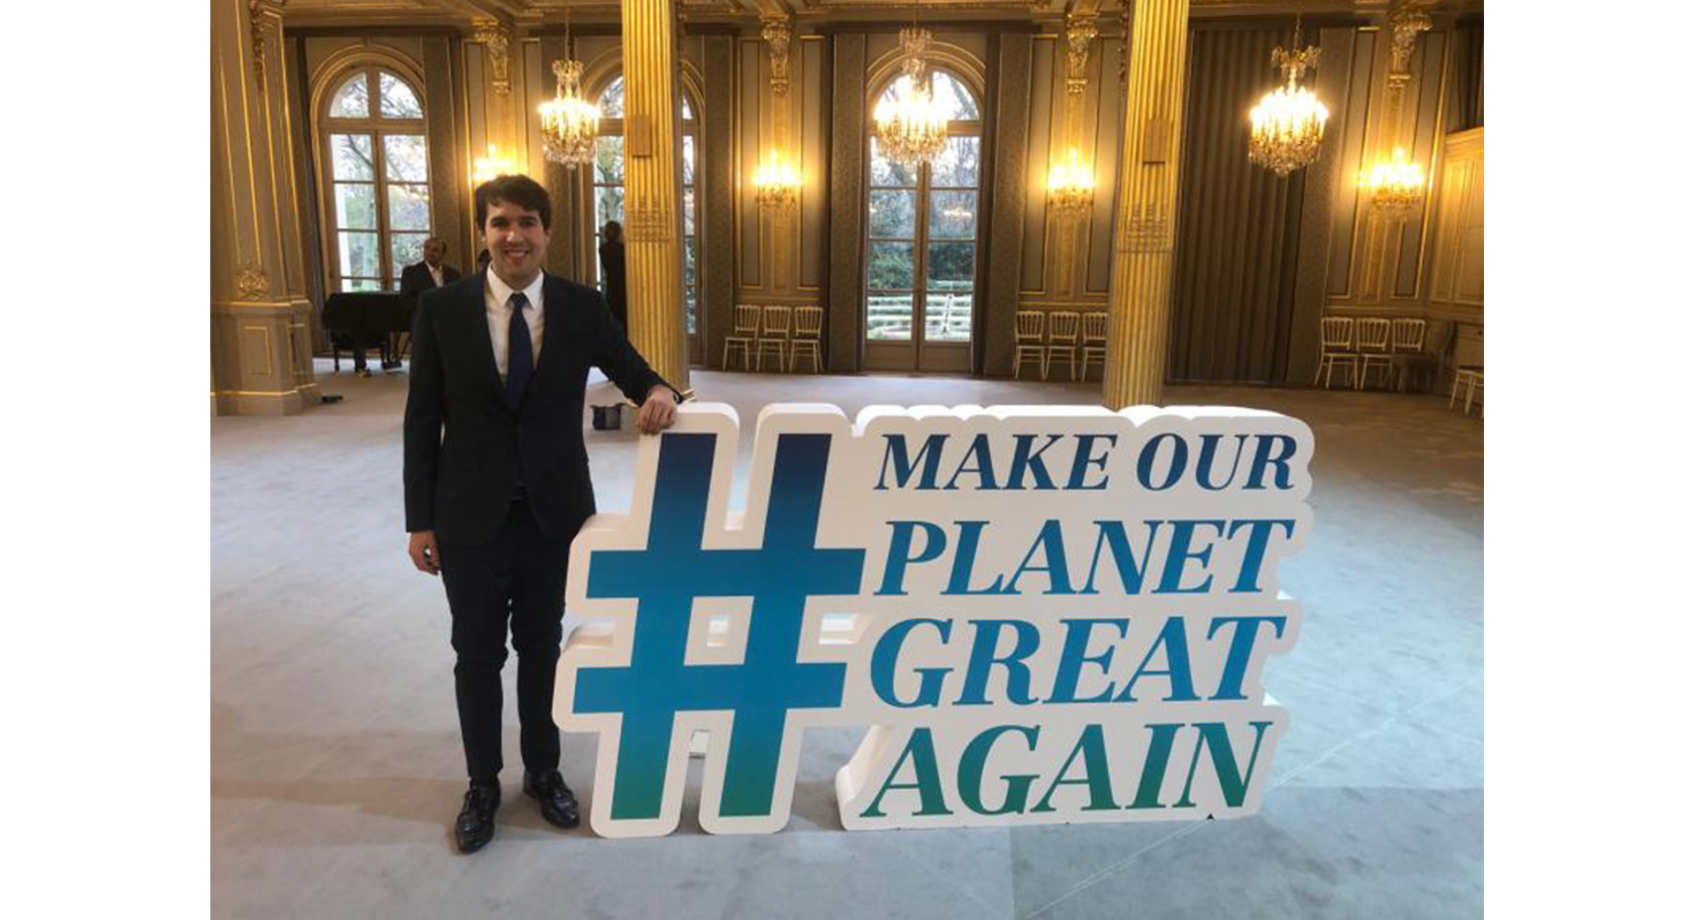 Alum Jesus Contreras Ocaña attends Make Our Planet Great Again event Banner